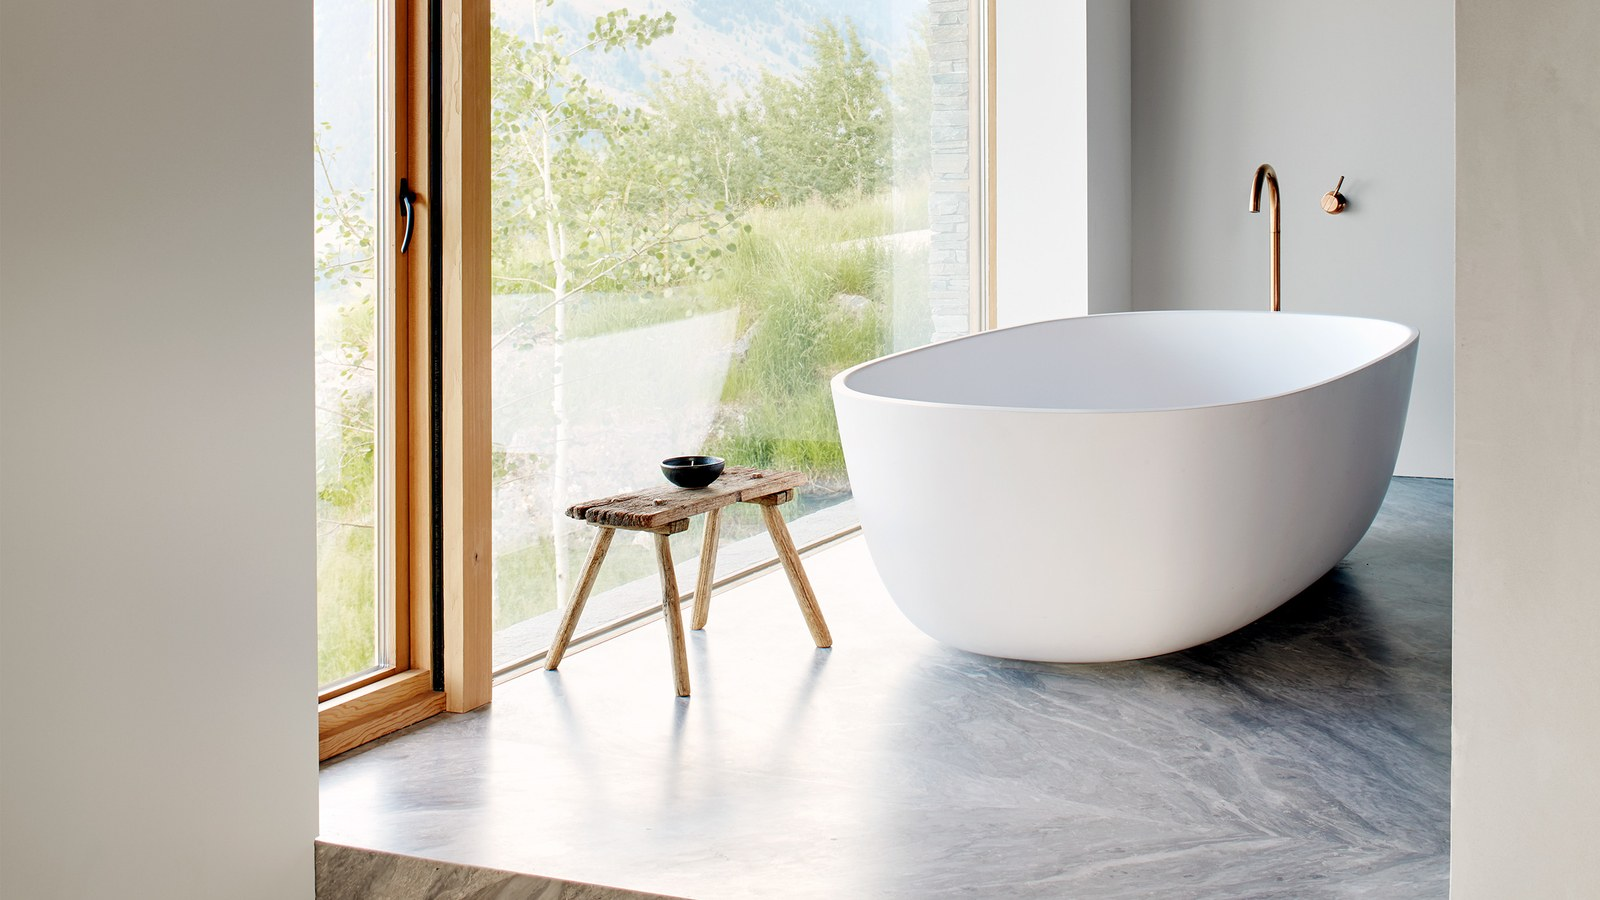 Bath Design Awards, Architectural Digest, Maison Valentina, Bathroom, interior design architectural digest Best of 2019: Great Bath Design Awards by Architectural Digest Great Design Awards  Embracing Natural Materials